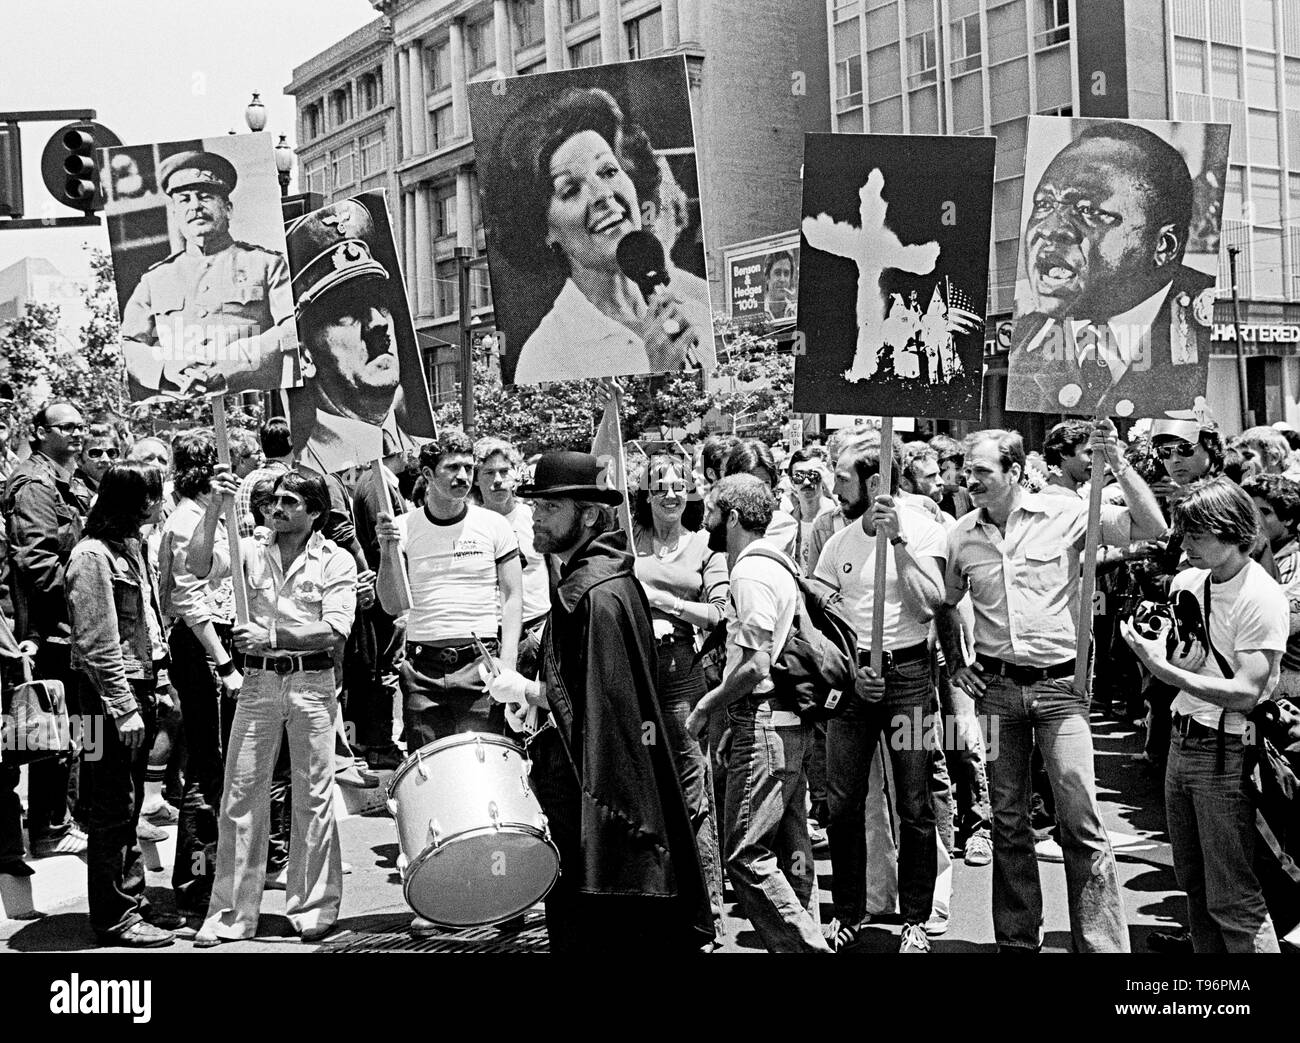 marchers carry signs in Gay Pride Parade in San Francisco, June 1977 - Stock Image